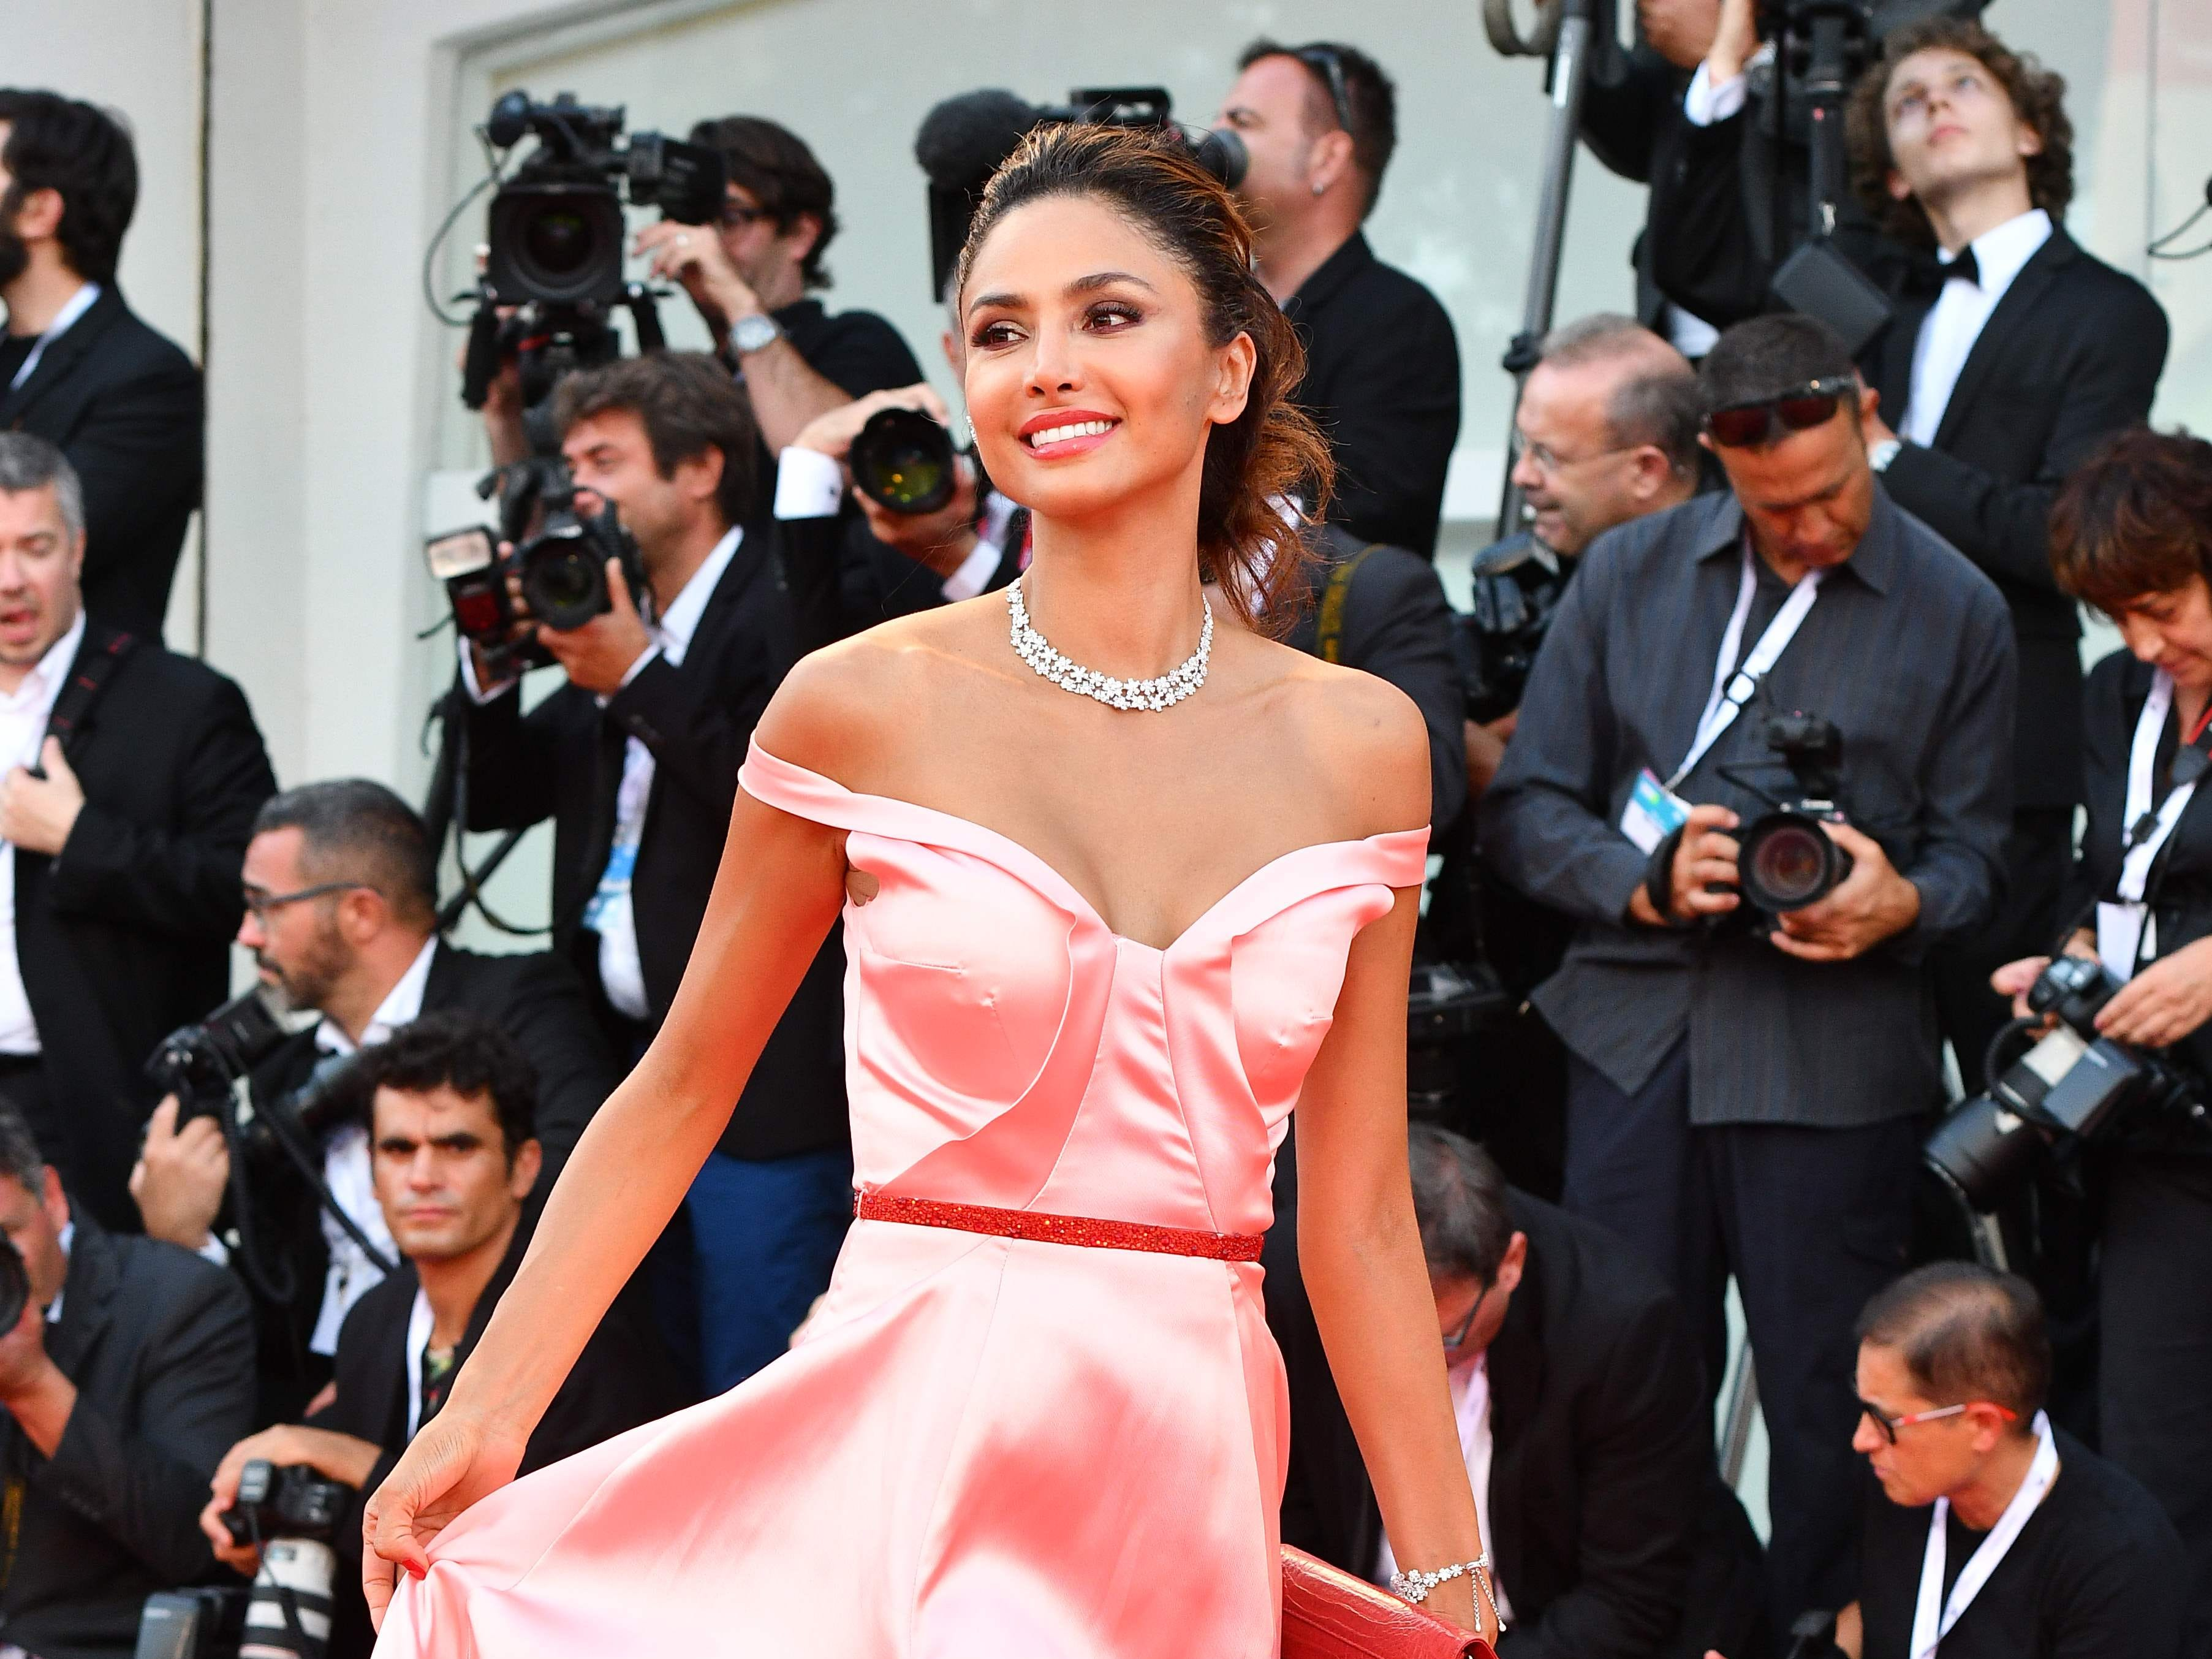 """Actress Patricia Contreras arrives for the premiere of the film """"Roma"""" presented in competition on August 30, 2018 during the 75th Venice Film Festival at Venice Lido. (Photo by Vincenzo PINTO / AFP)VINCENZO PINTO/AFP/Getty Images ORIG FILE ID: AFP_18Q11G"""